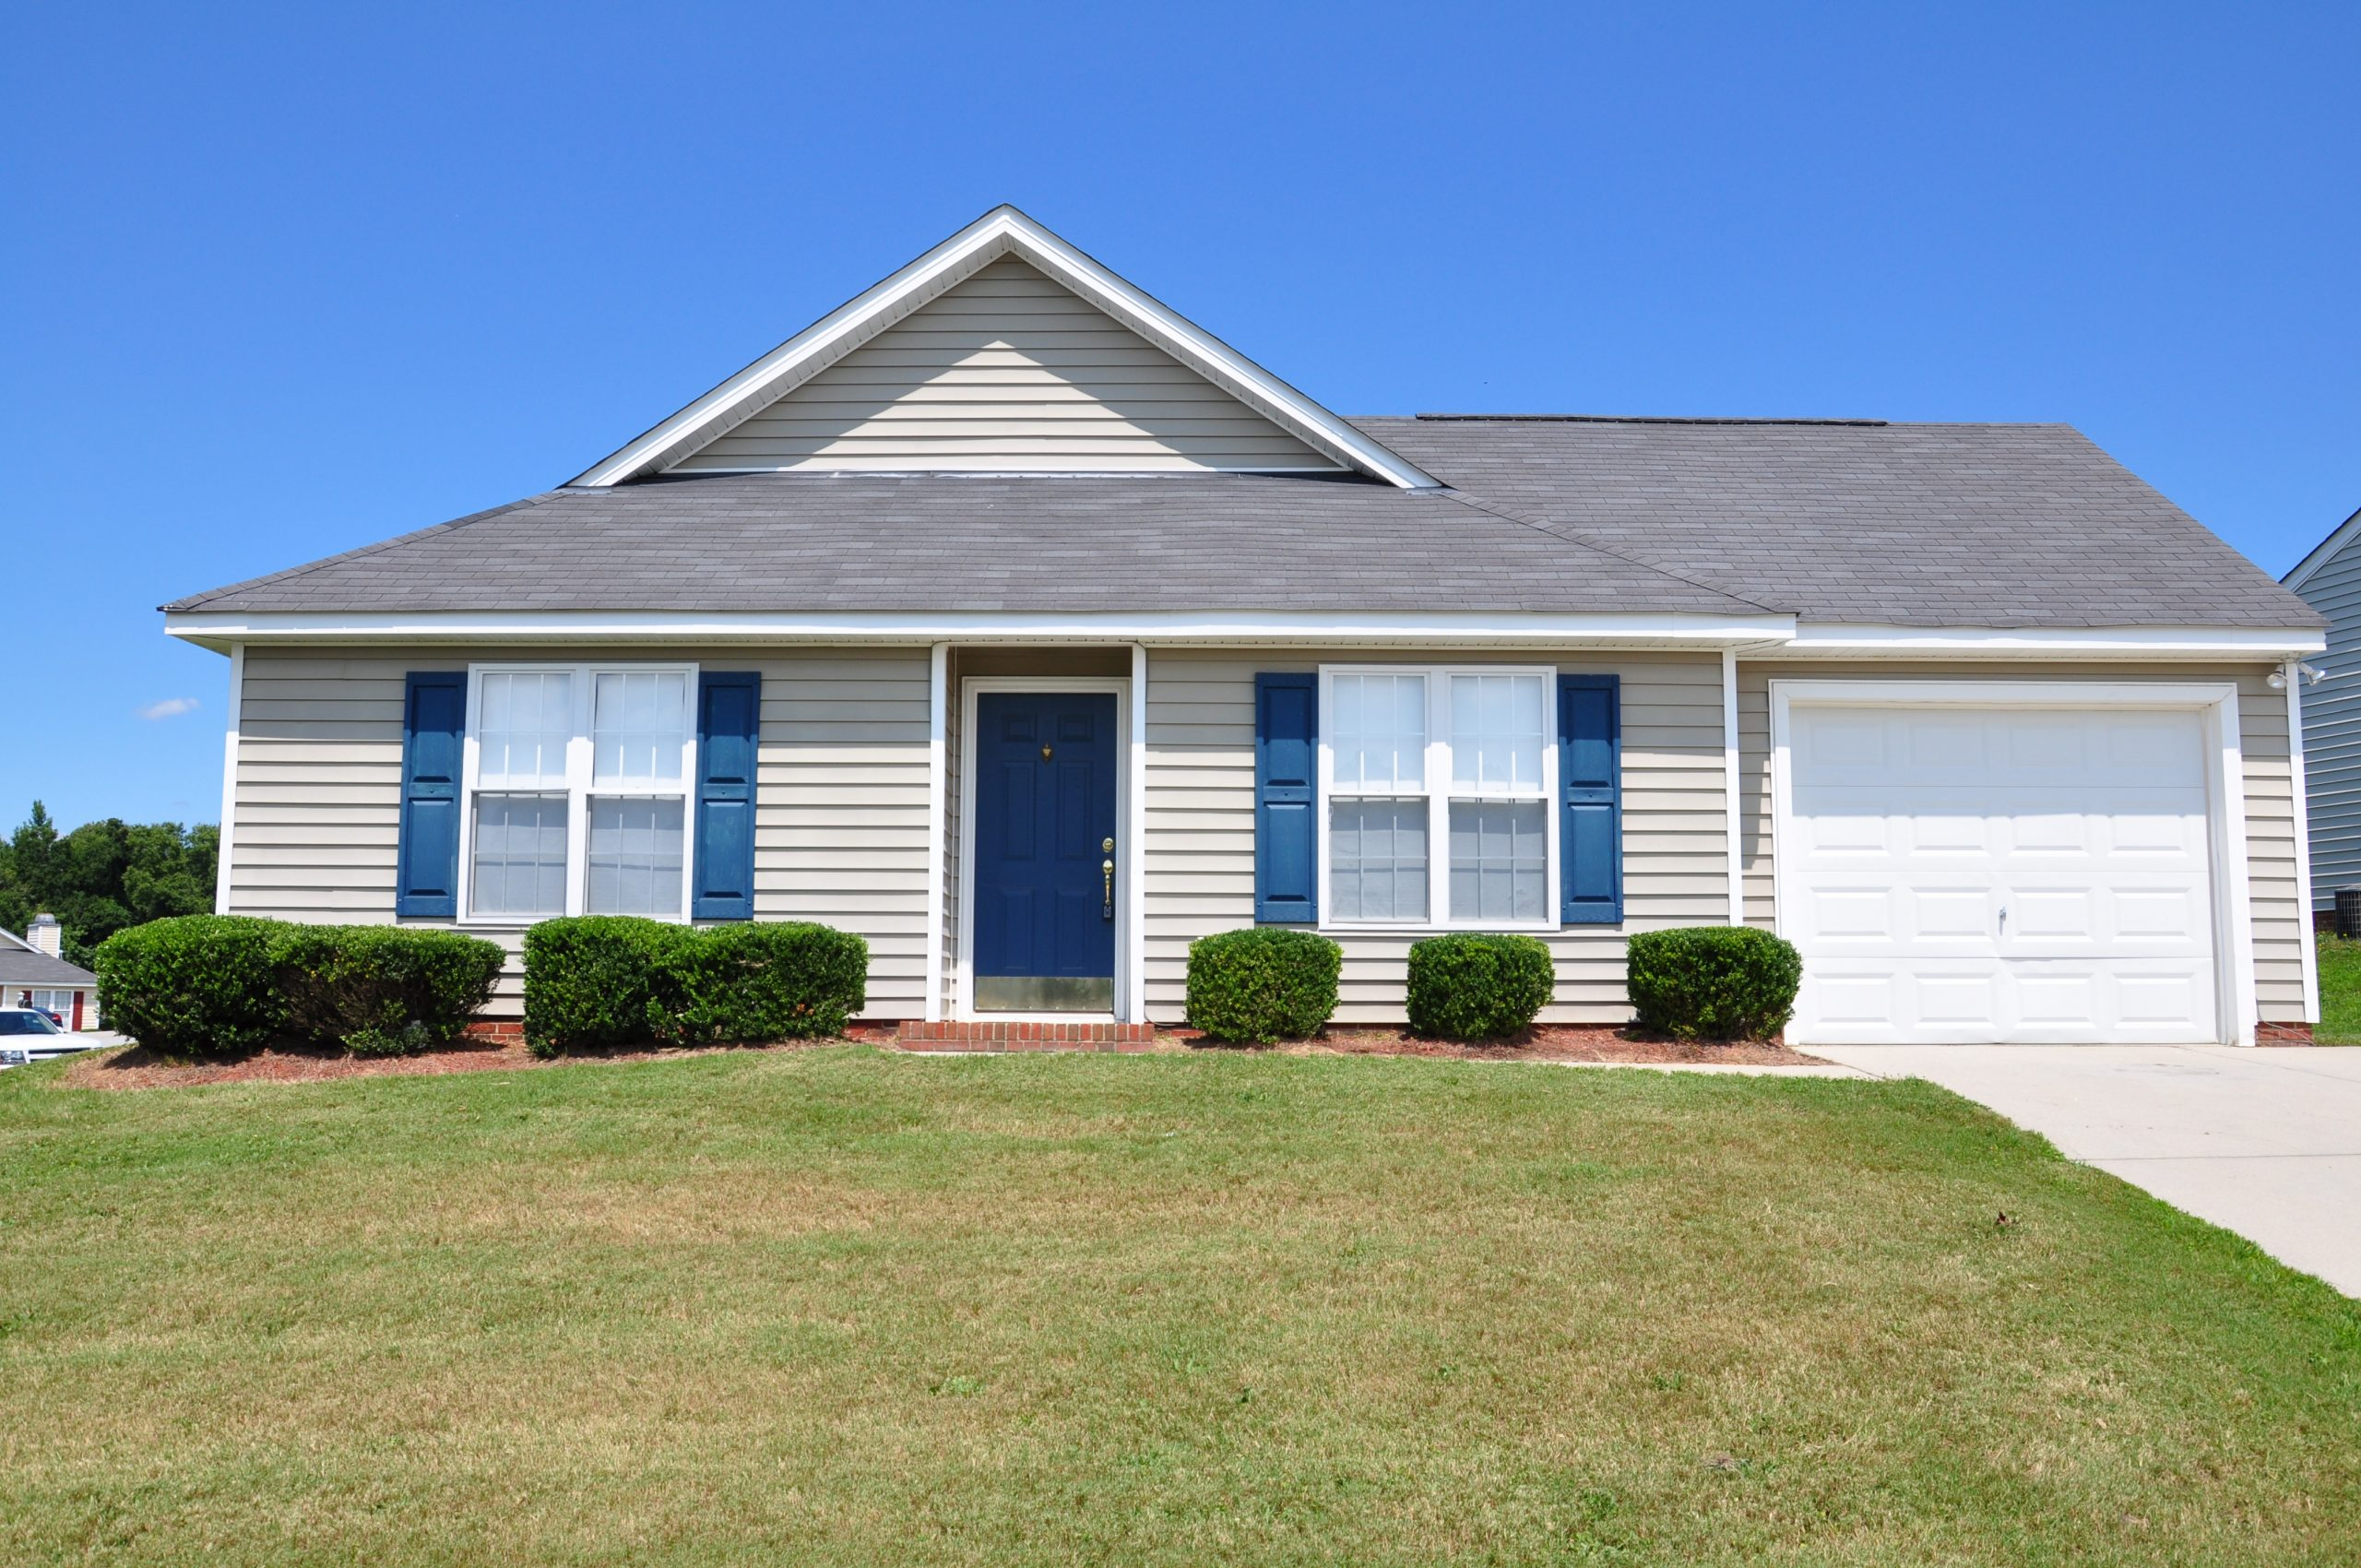 Section 8 Voucher Program - Raleigh Housing Authority